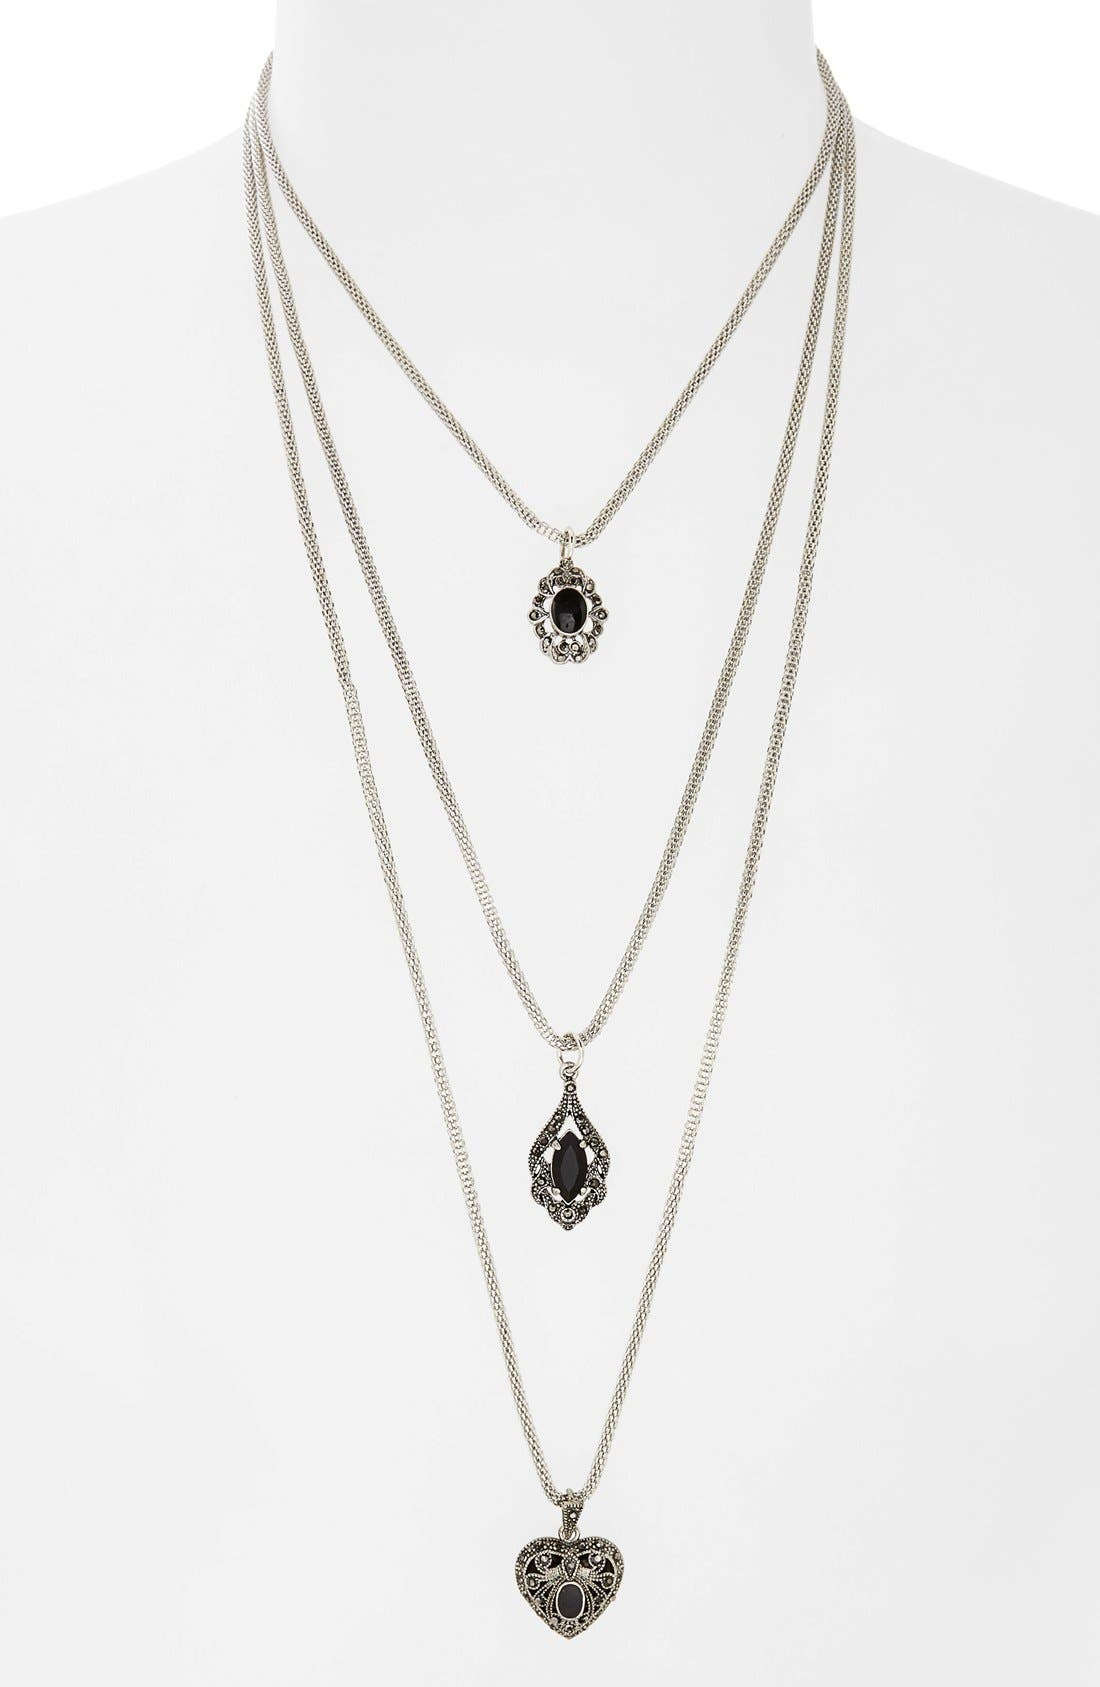 Alternate Image 1 Selected - Topshop Multi Row Antique Look Necklace